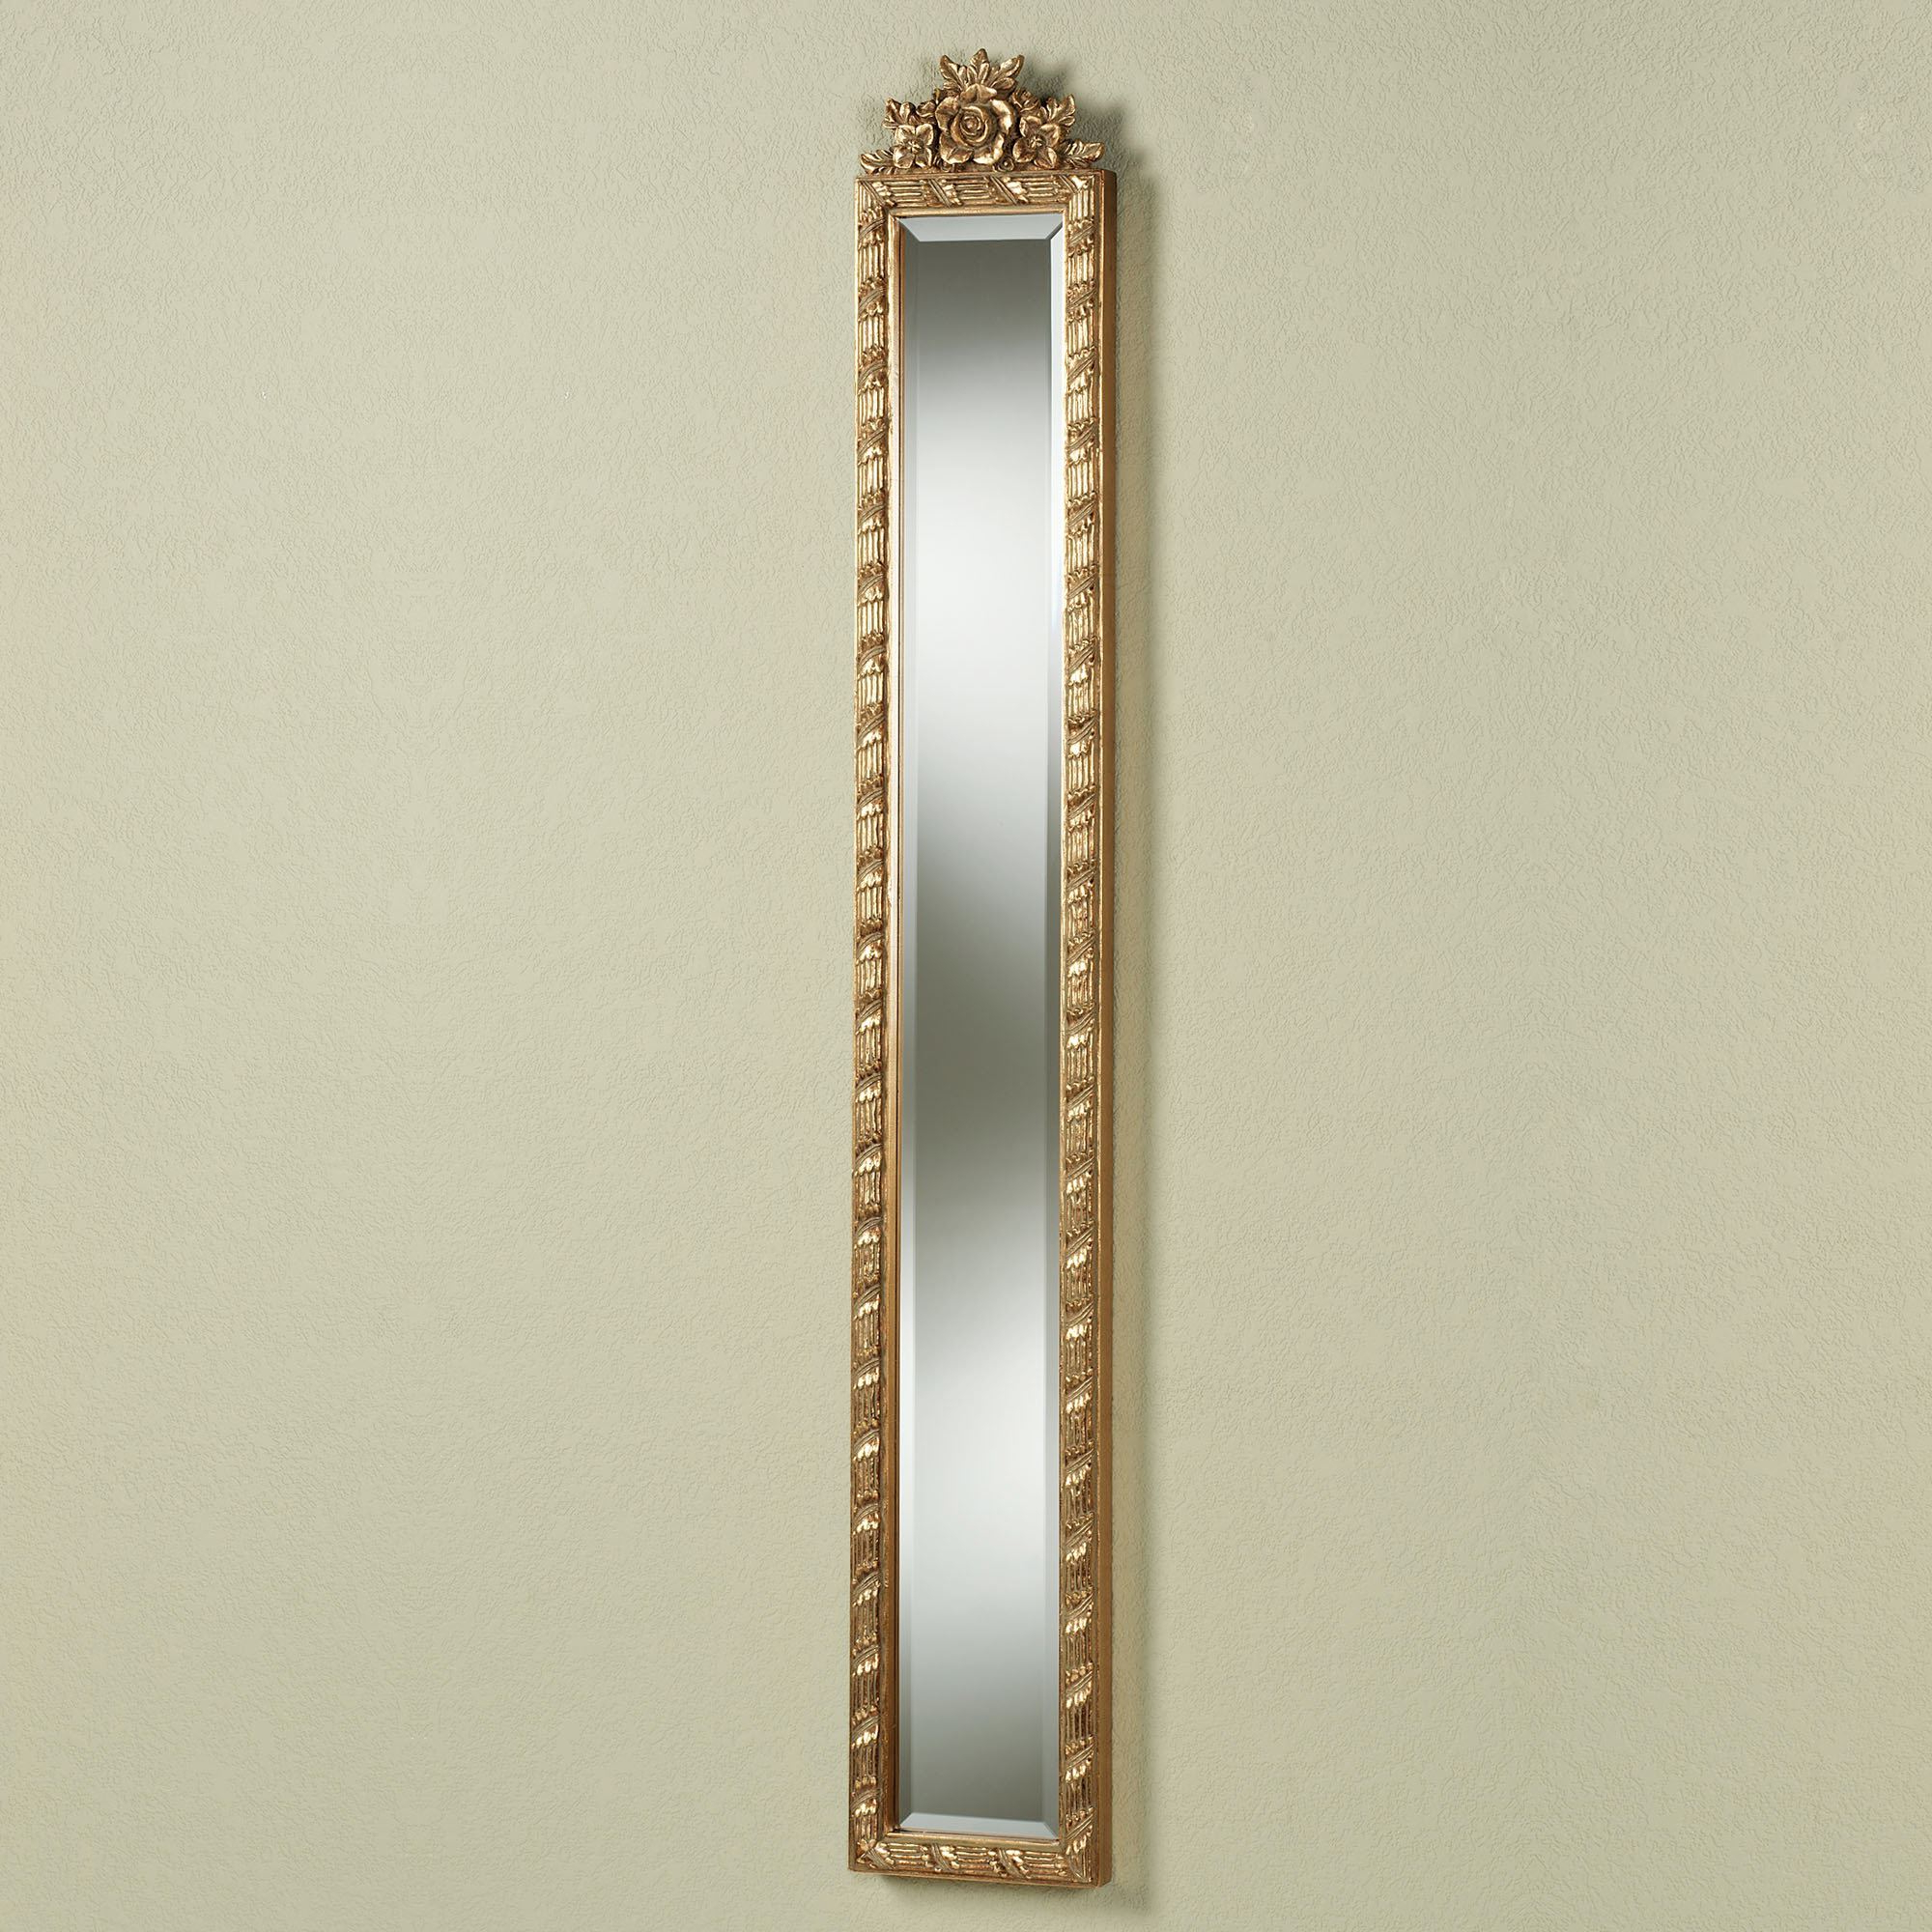 Narrow Wall Mirrors Intended For Famous Giuliana Antique Gold Floral Wall Mirror Panel (View 5 of 20)